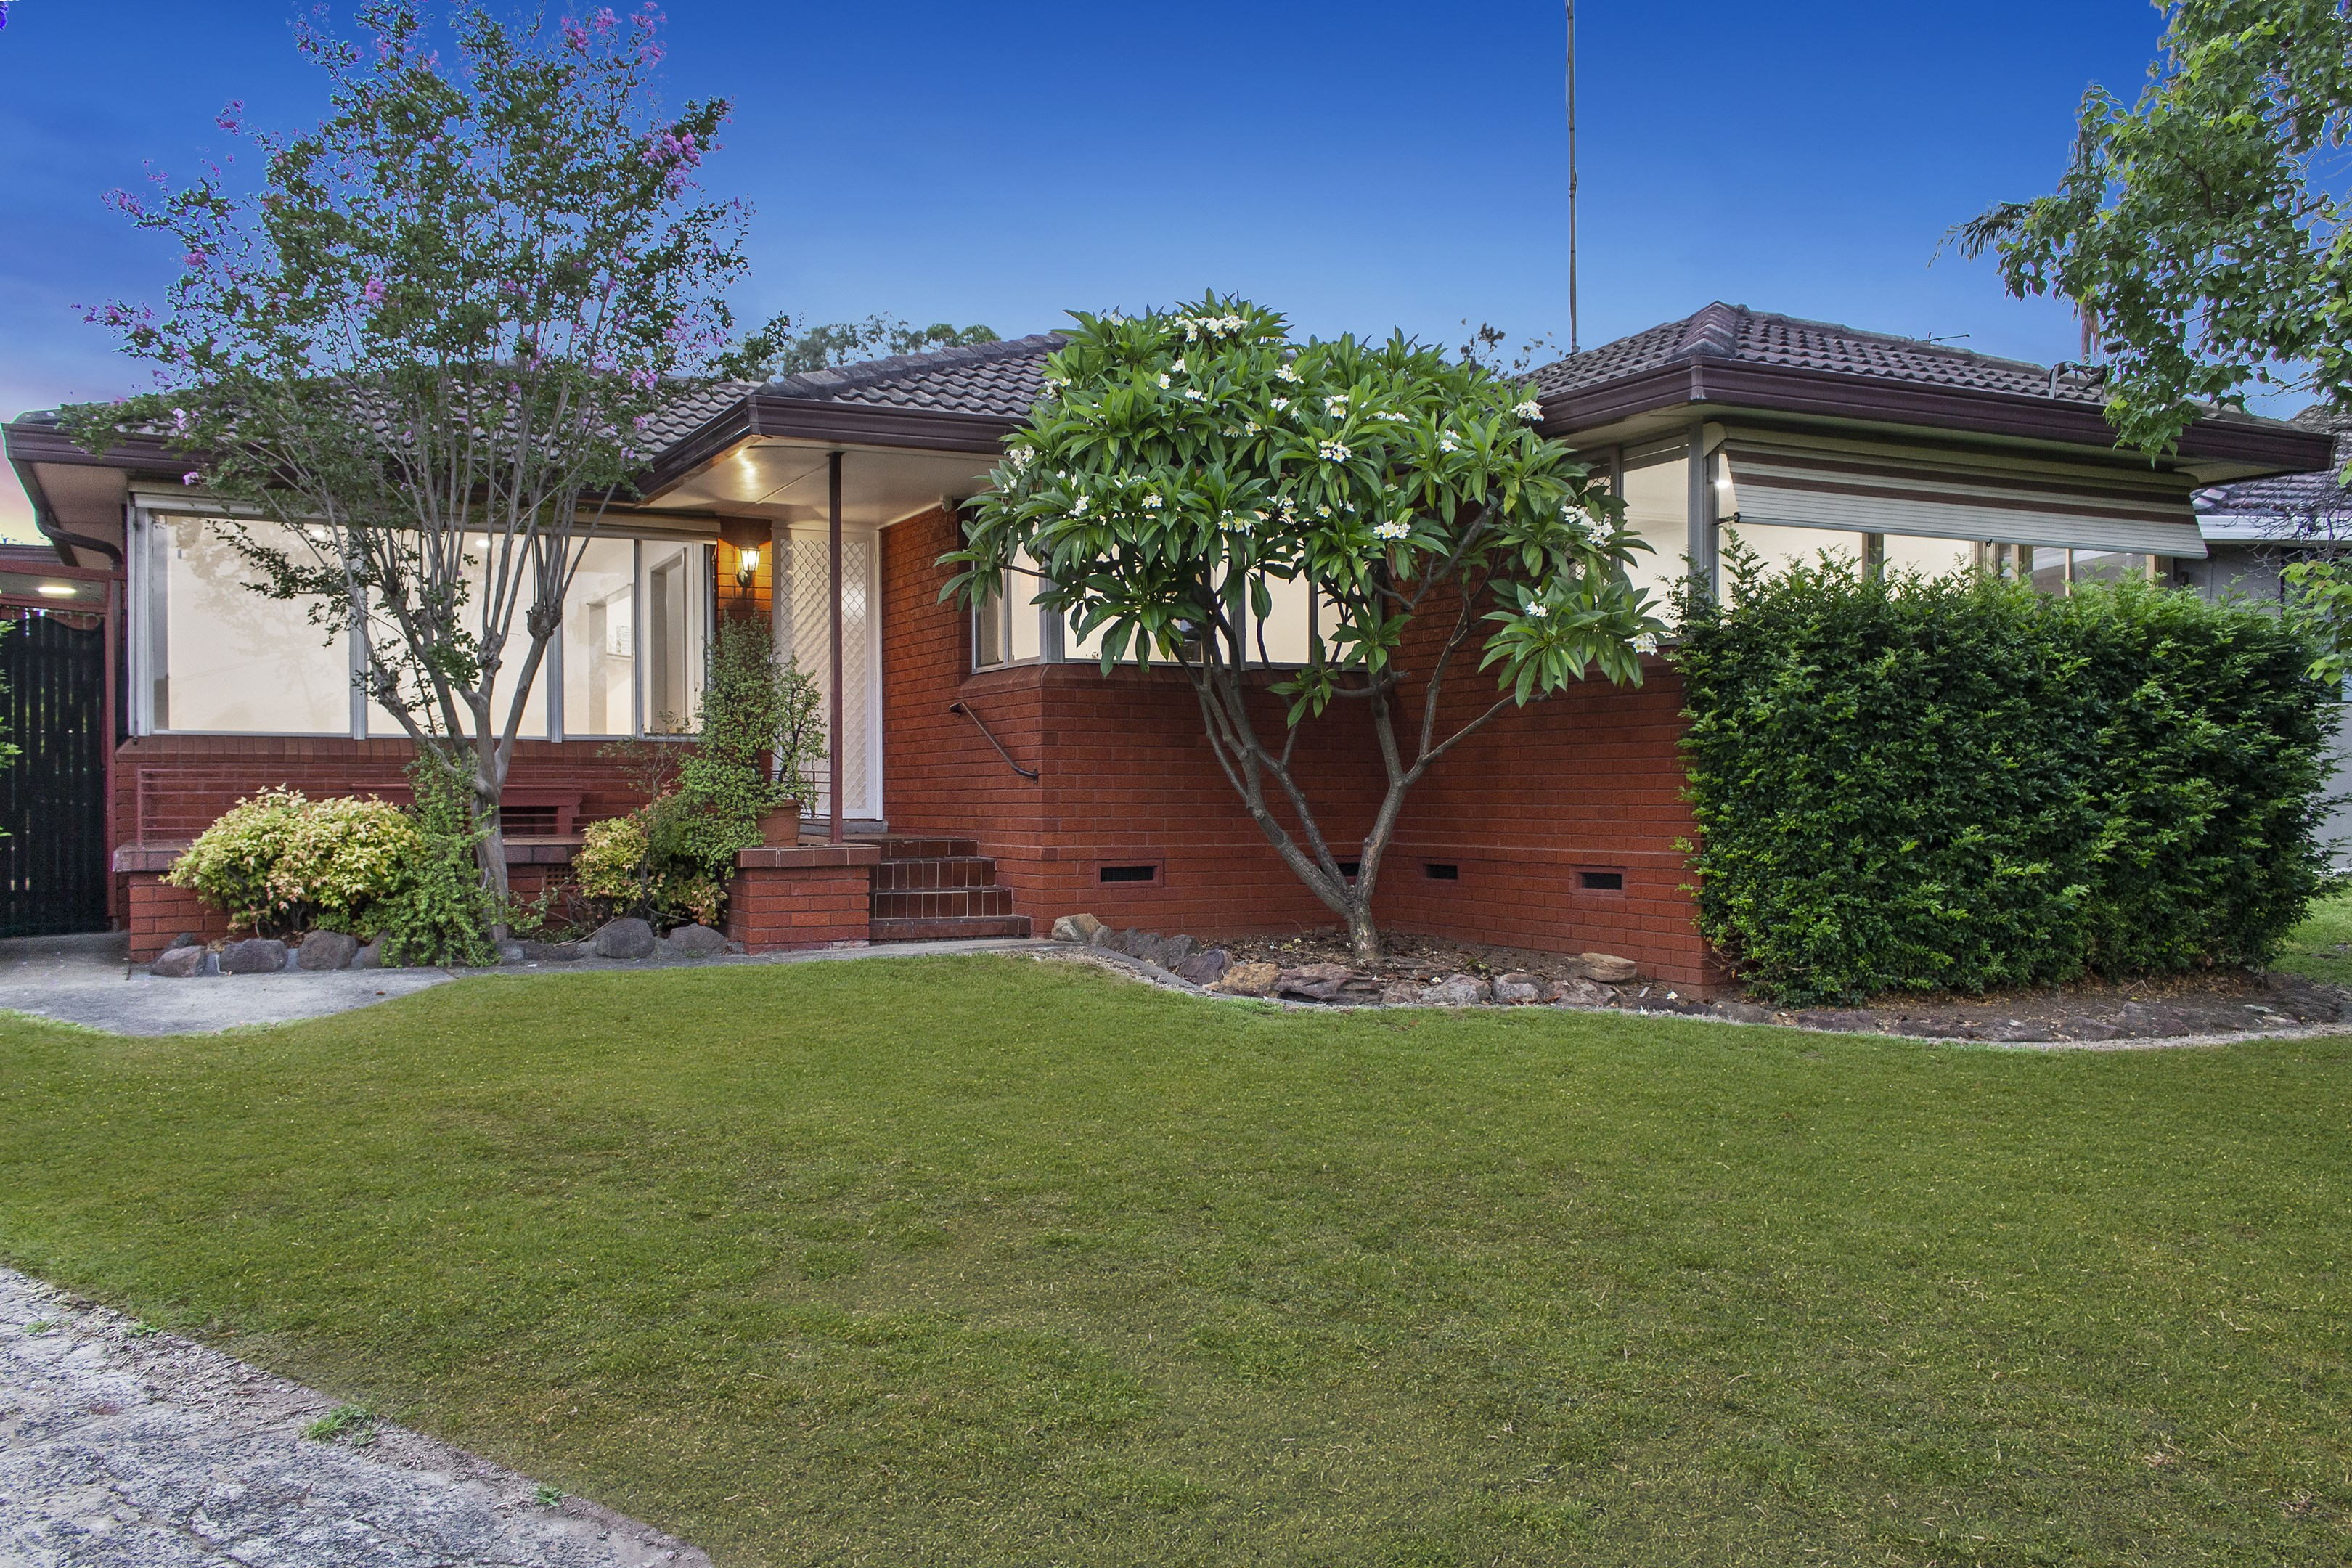 Property Report for 42 Dredge Avenue, Moorebank NSW 2170